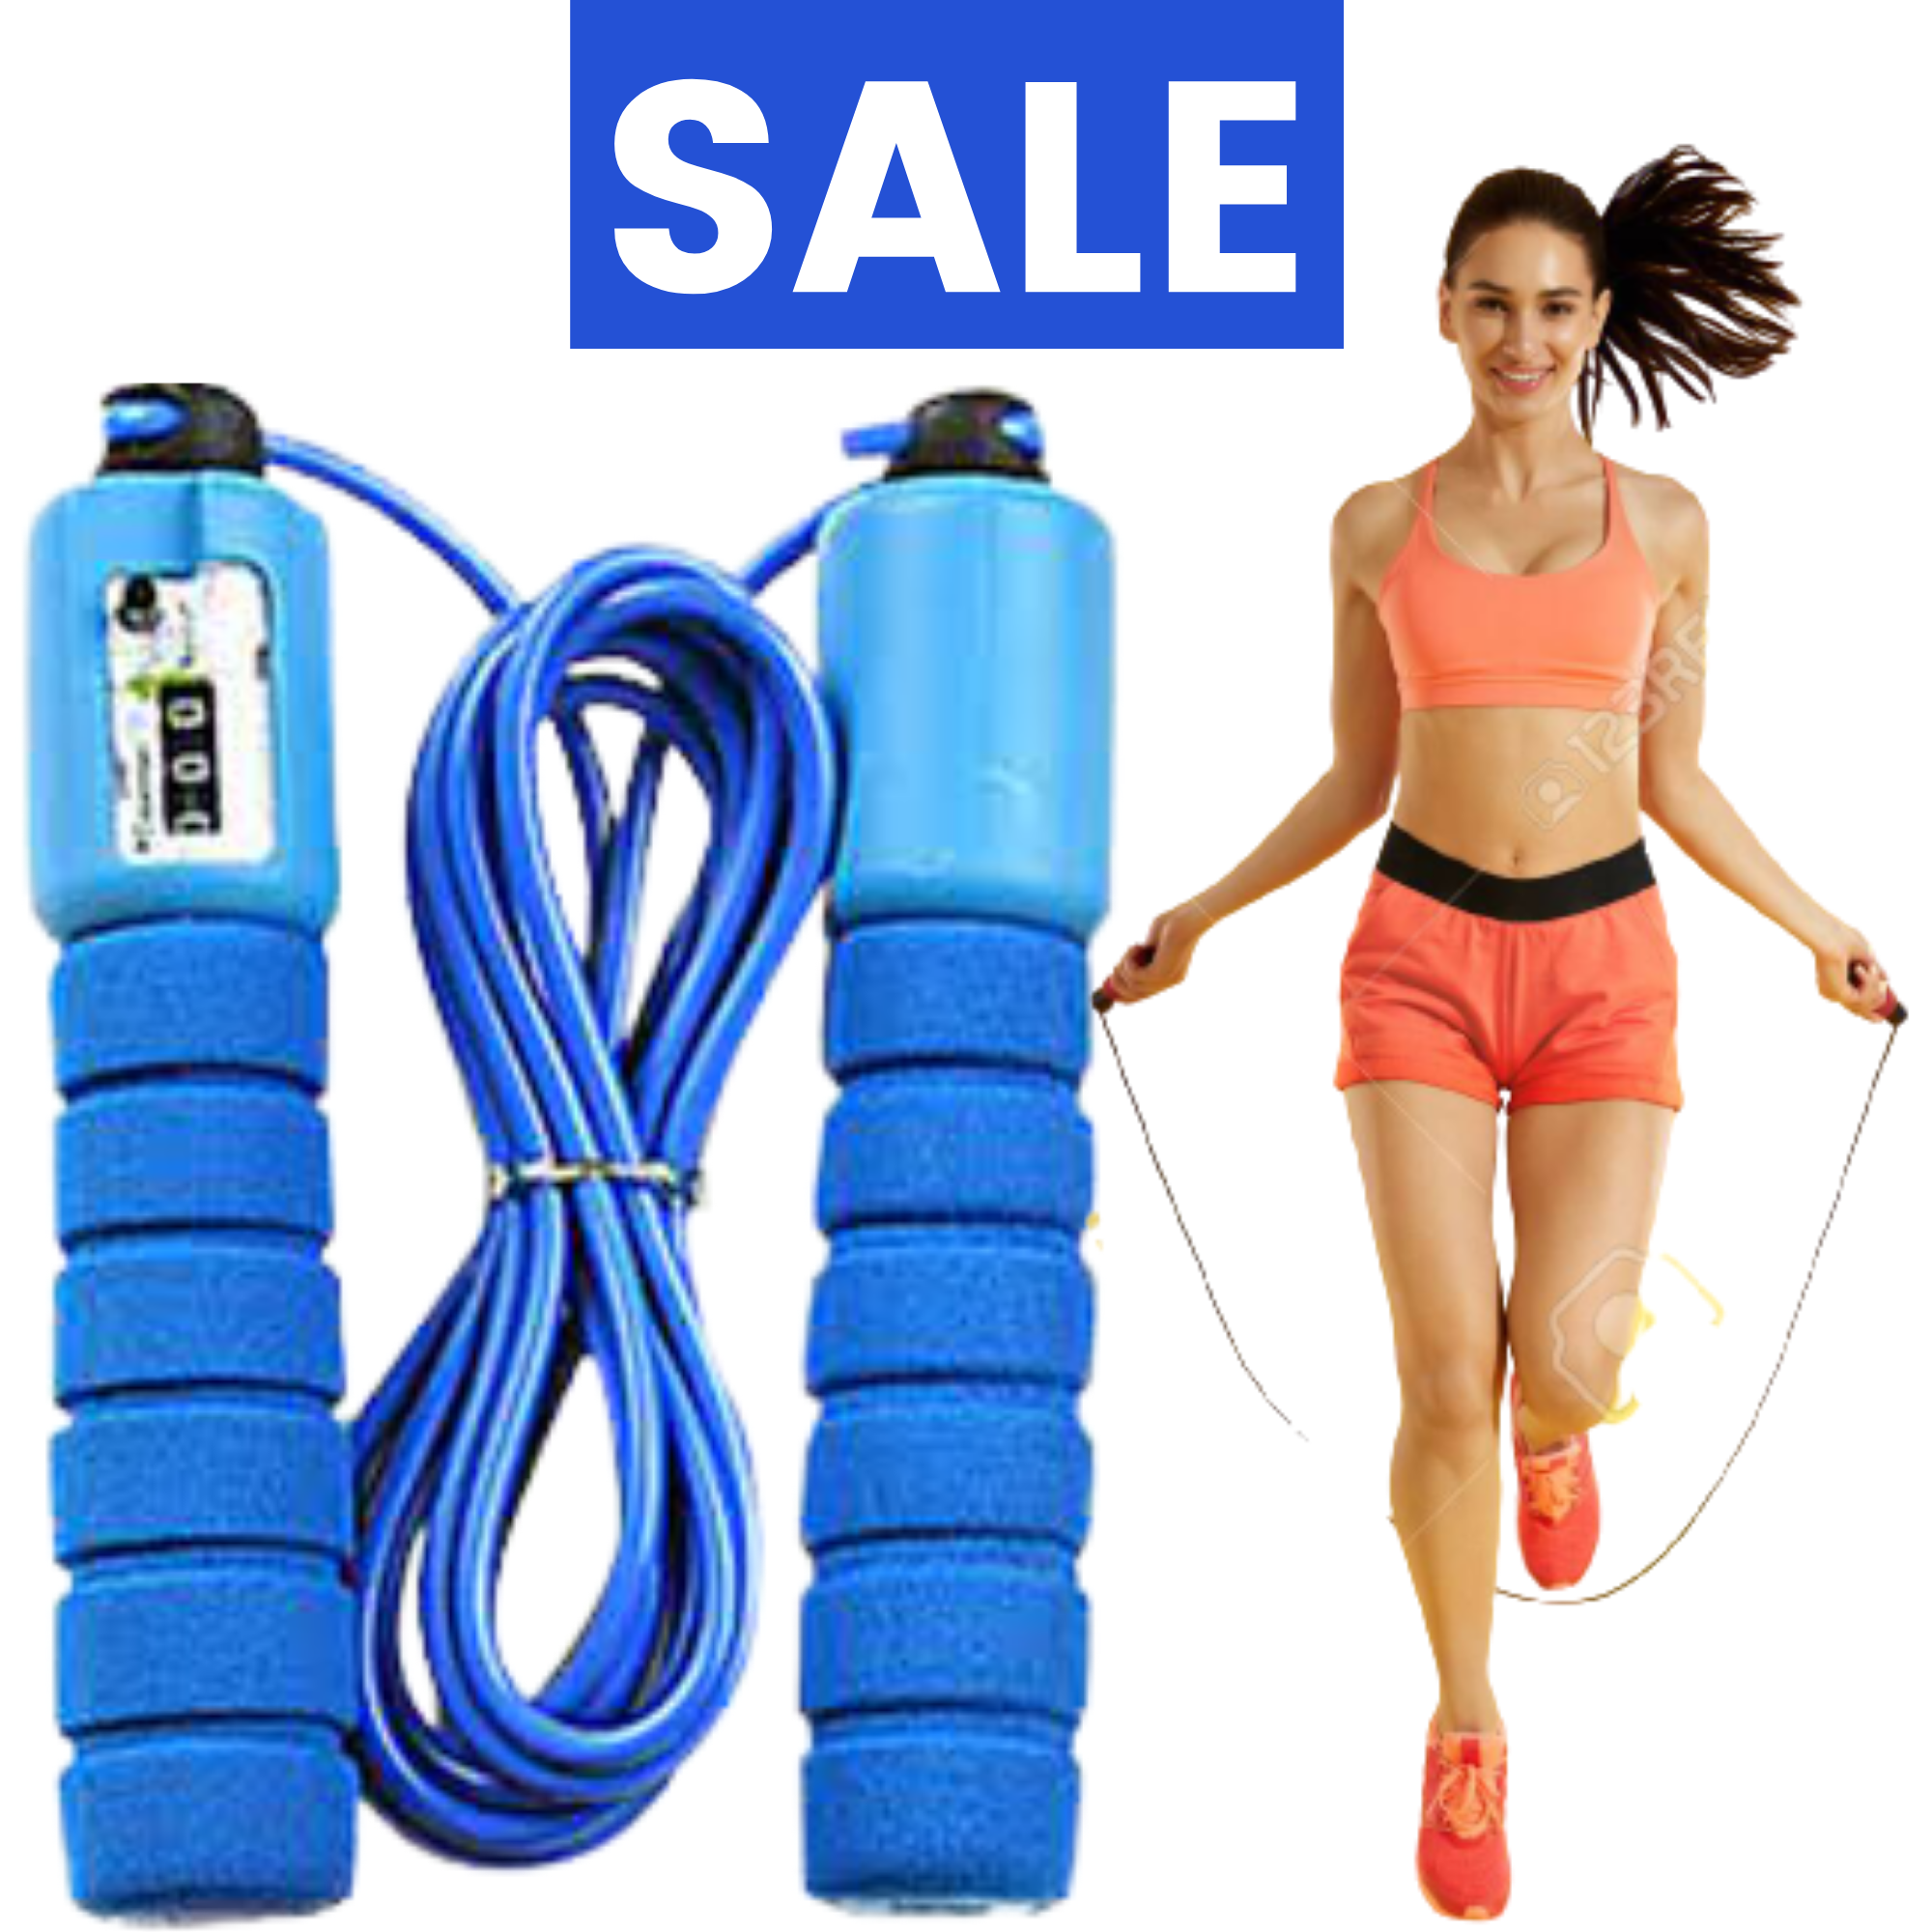 Skipping Rope for workout Original Jumping rope for men and women By Globaq Store